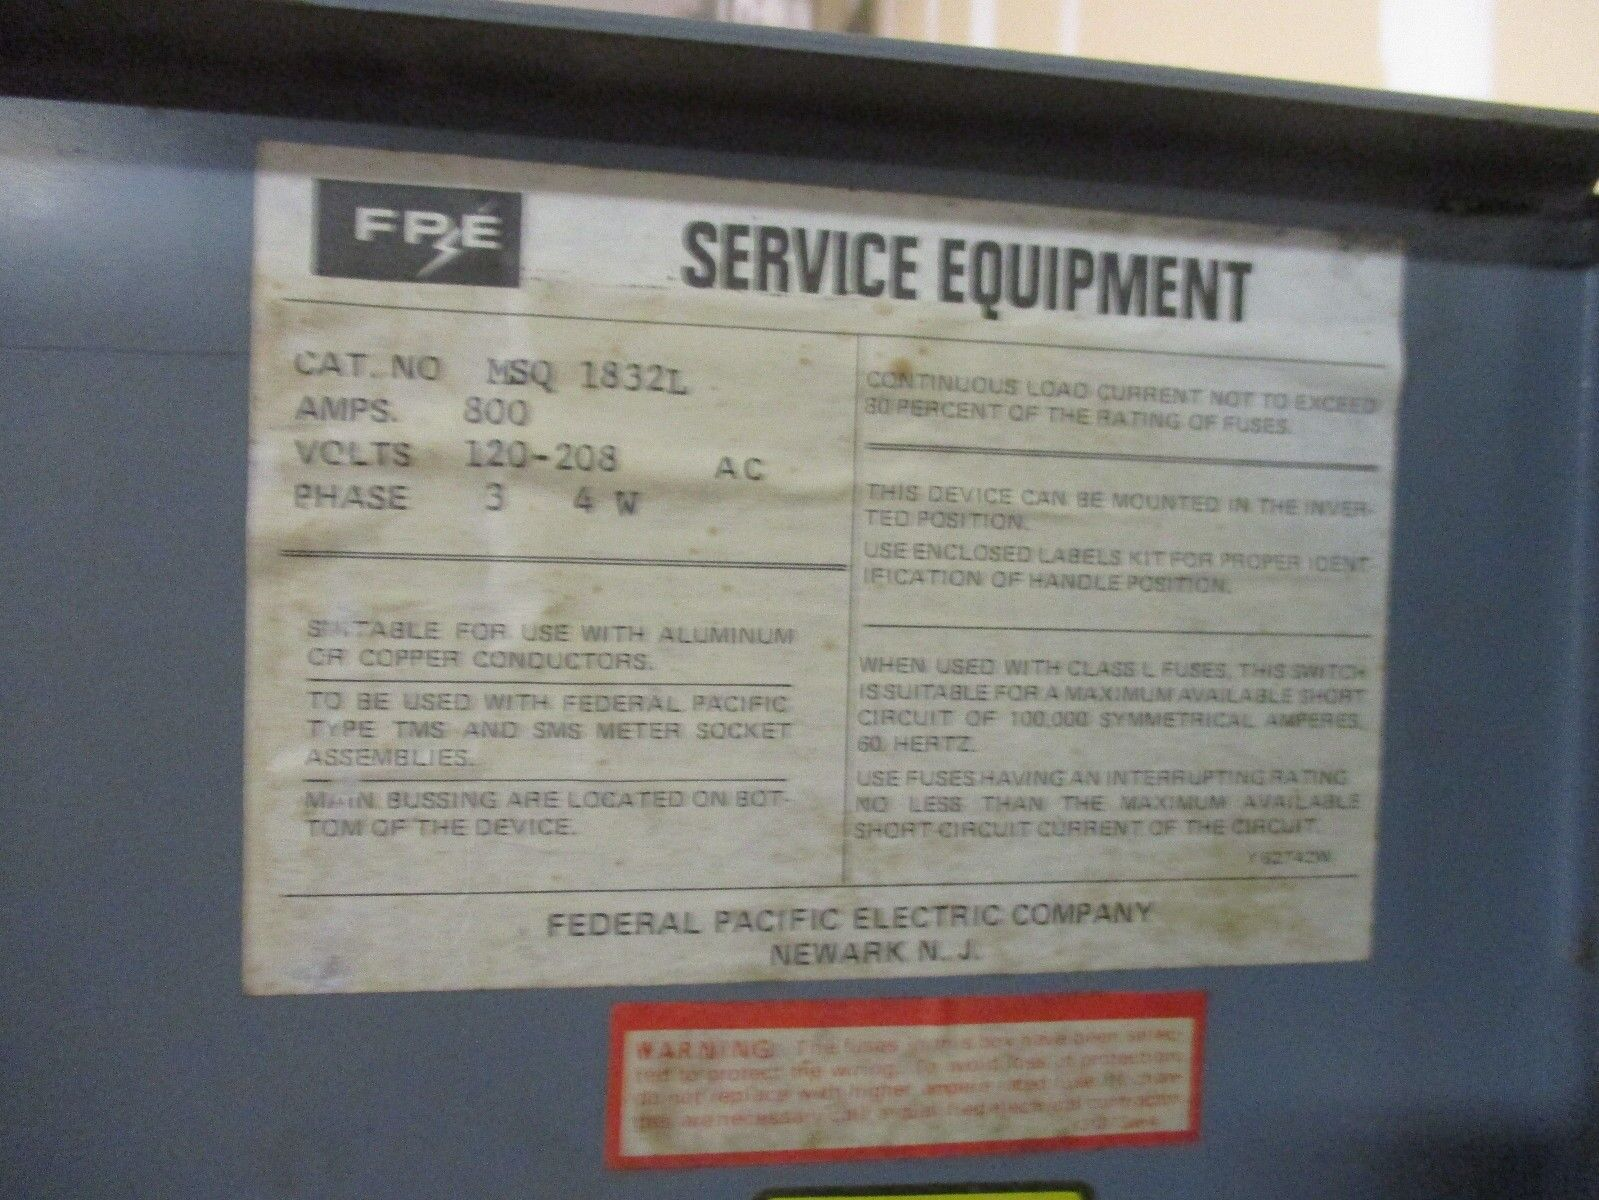 Fpe Msq1832l 800 Amp 120 208 Volt Meter Stack Disconnect Ebay Image Library Hom2200 Circuit Breaker Norton Secured Powered By Verisign